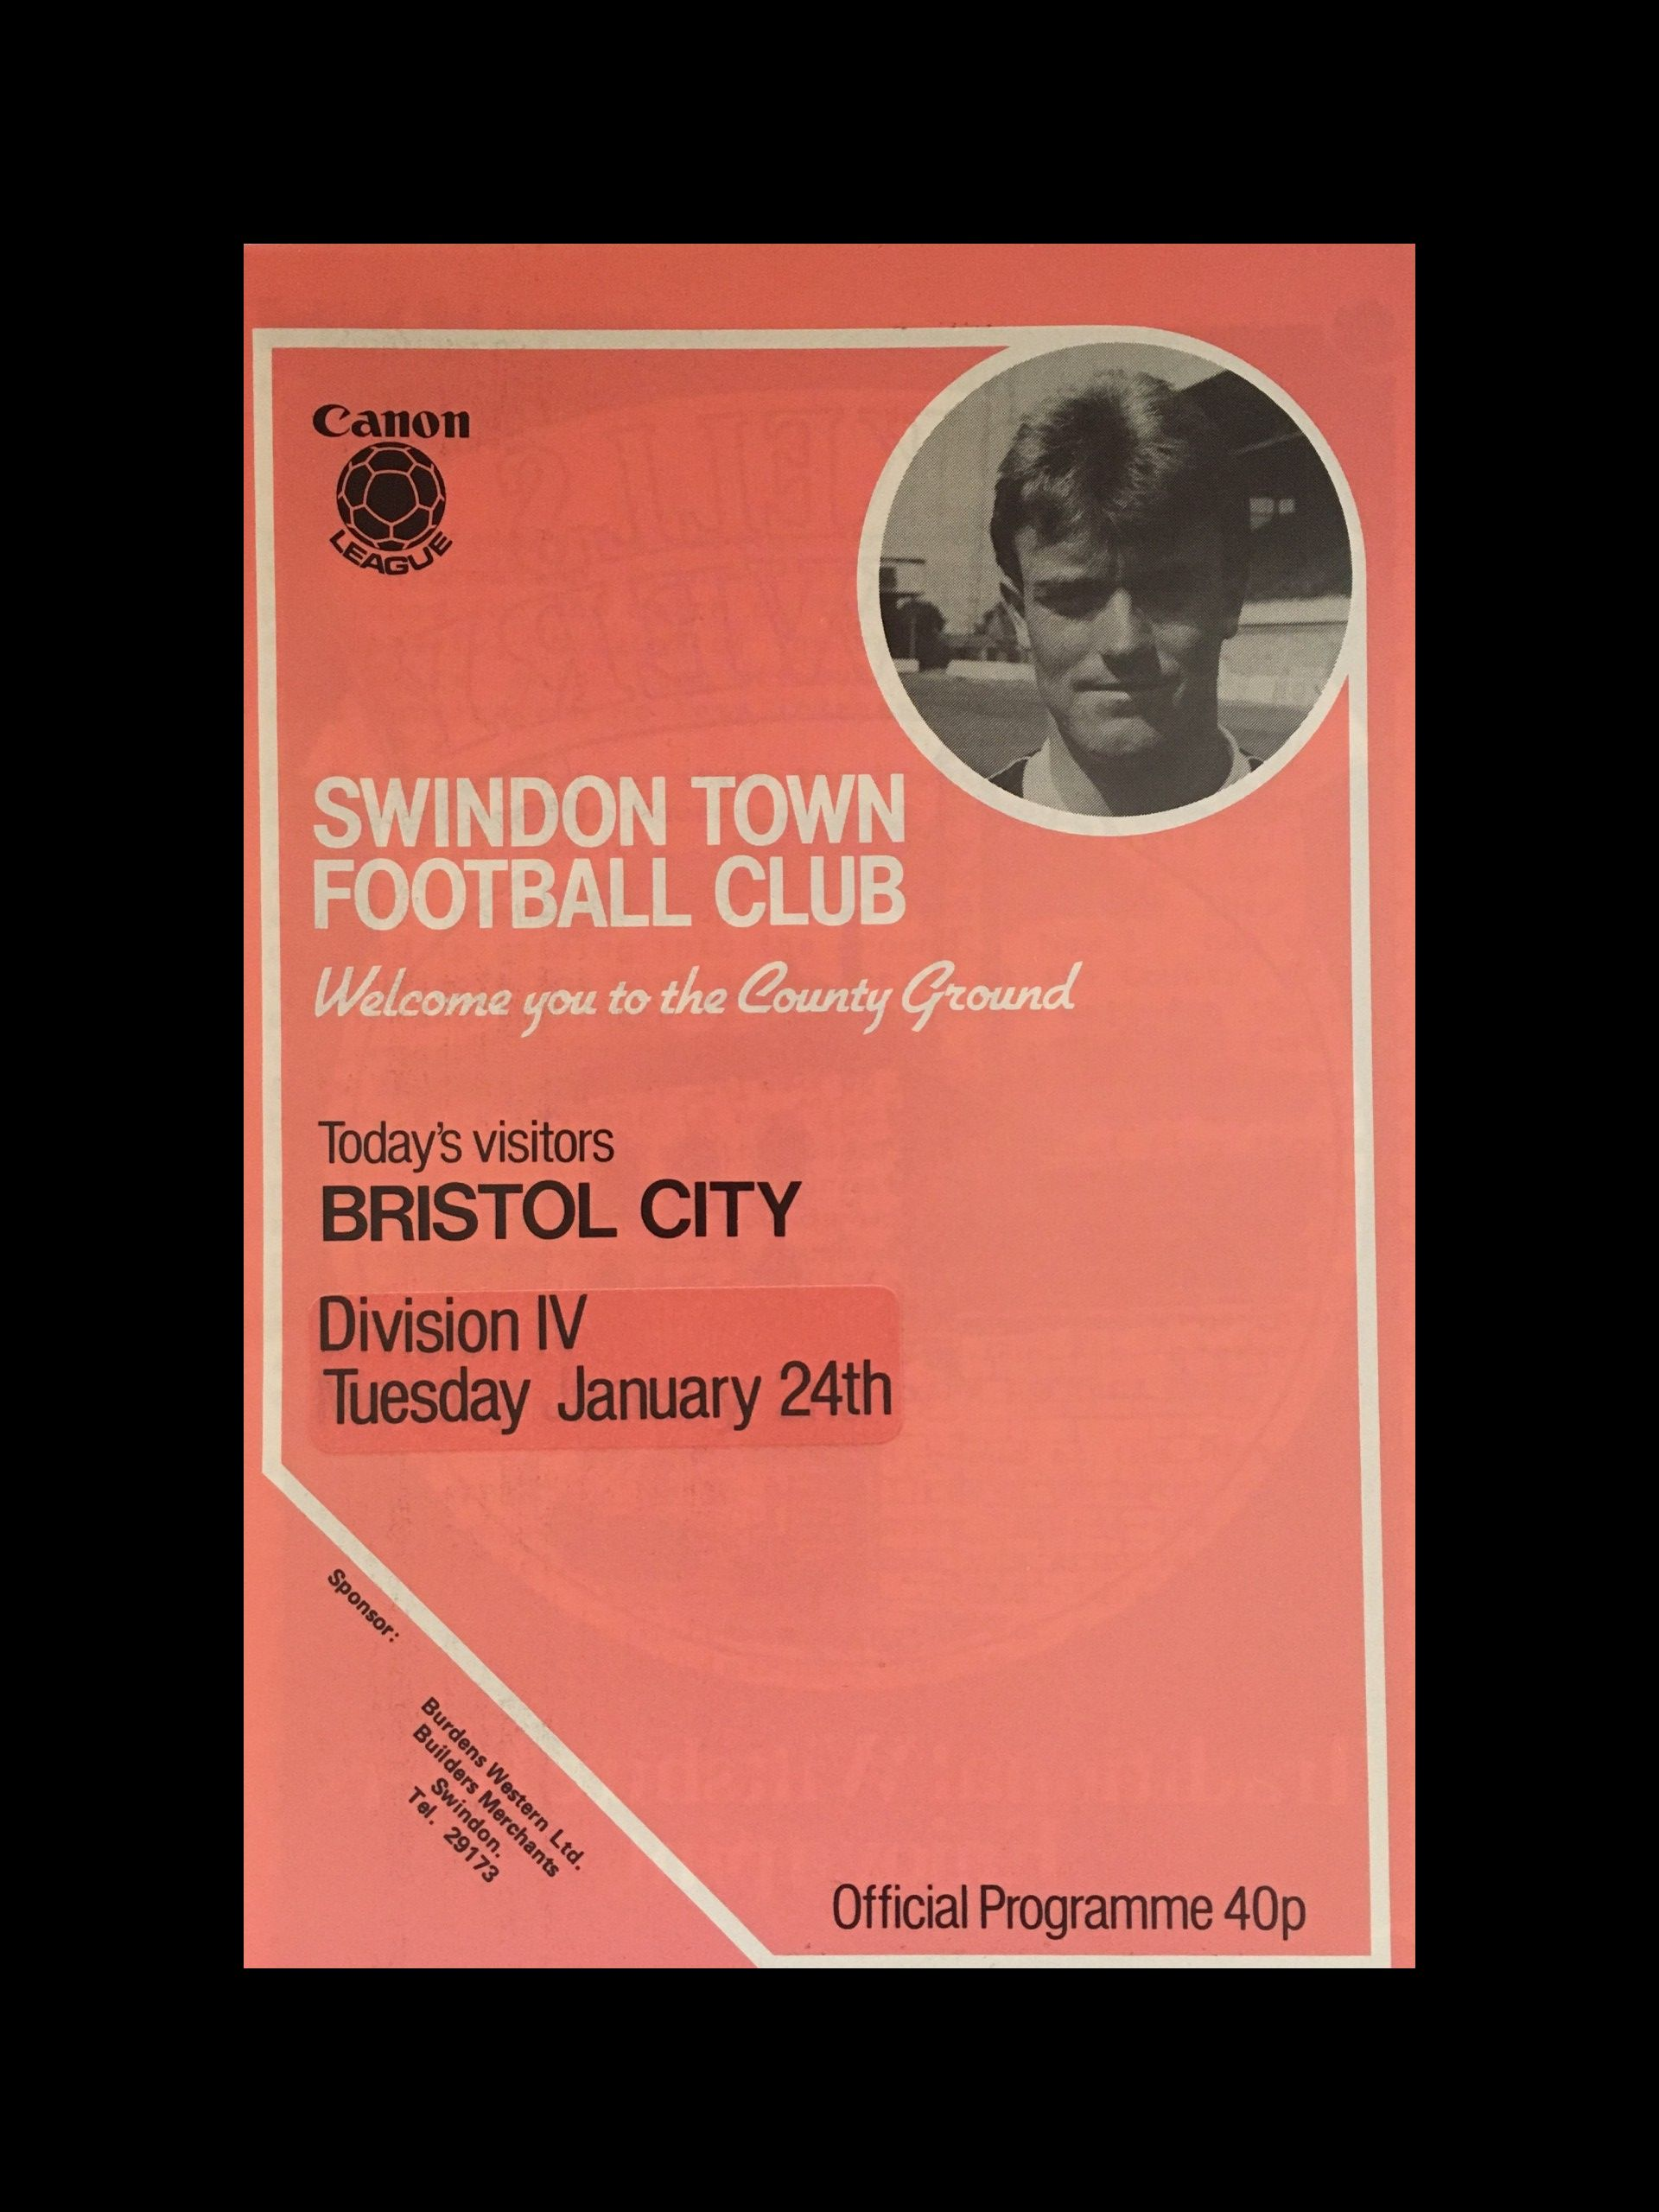 Swindon Town v Bristol City 24-01-84 Programme